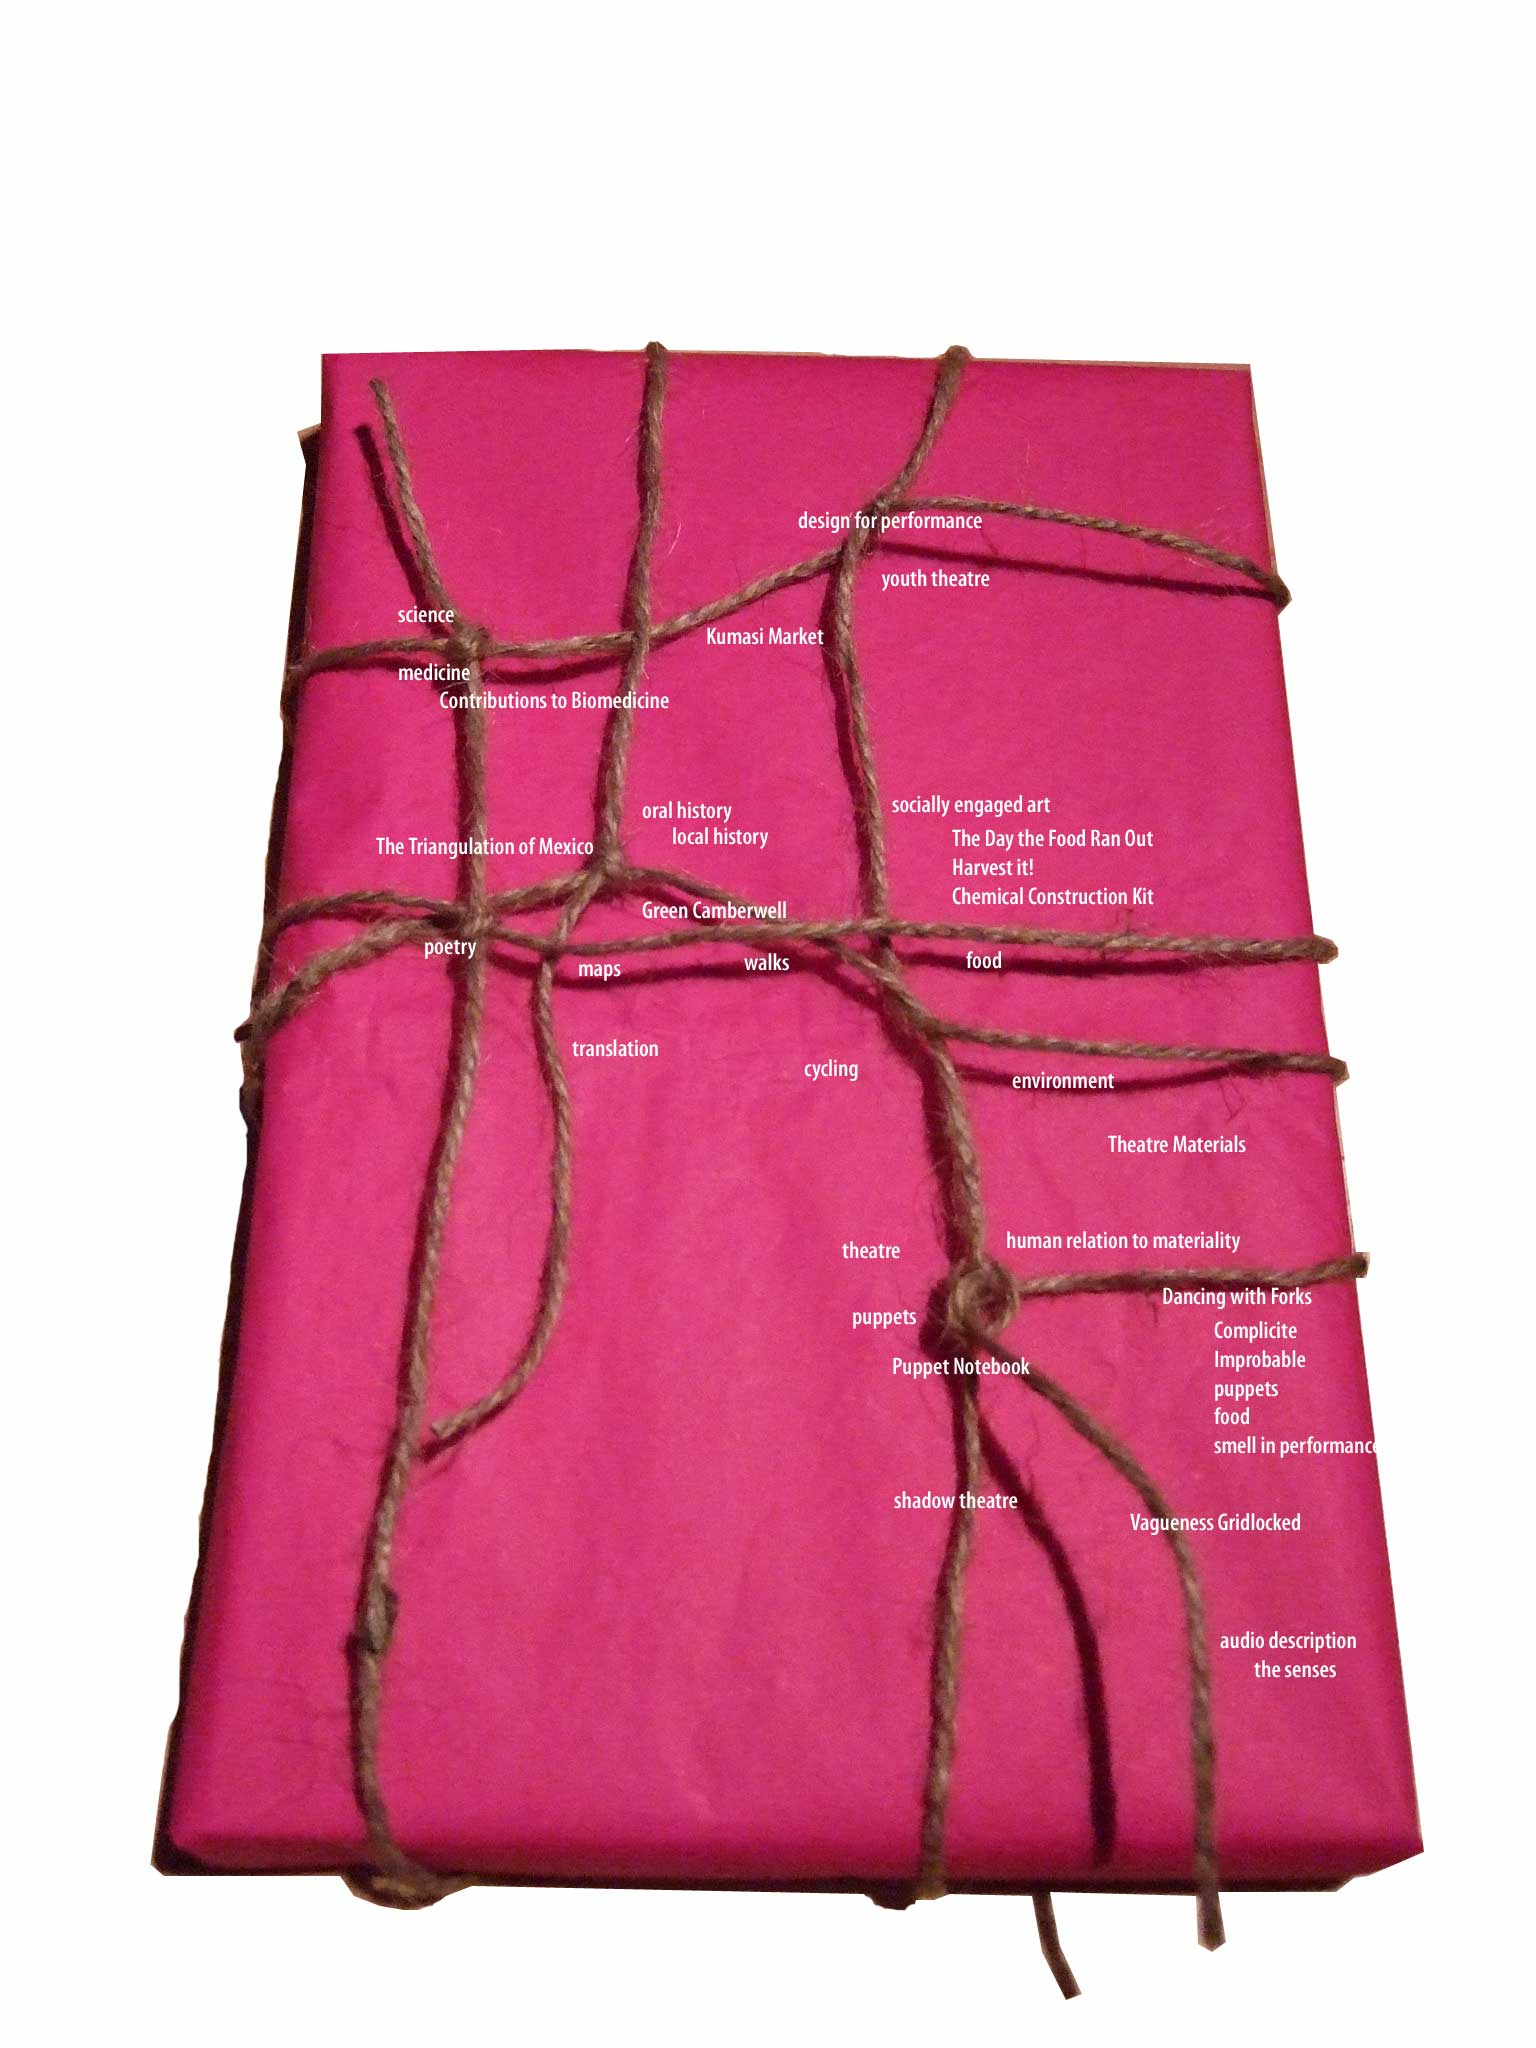 parcel wrapped in pink tissue and hairy string with captions relating to themes of work